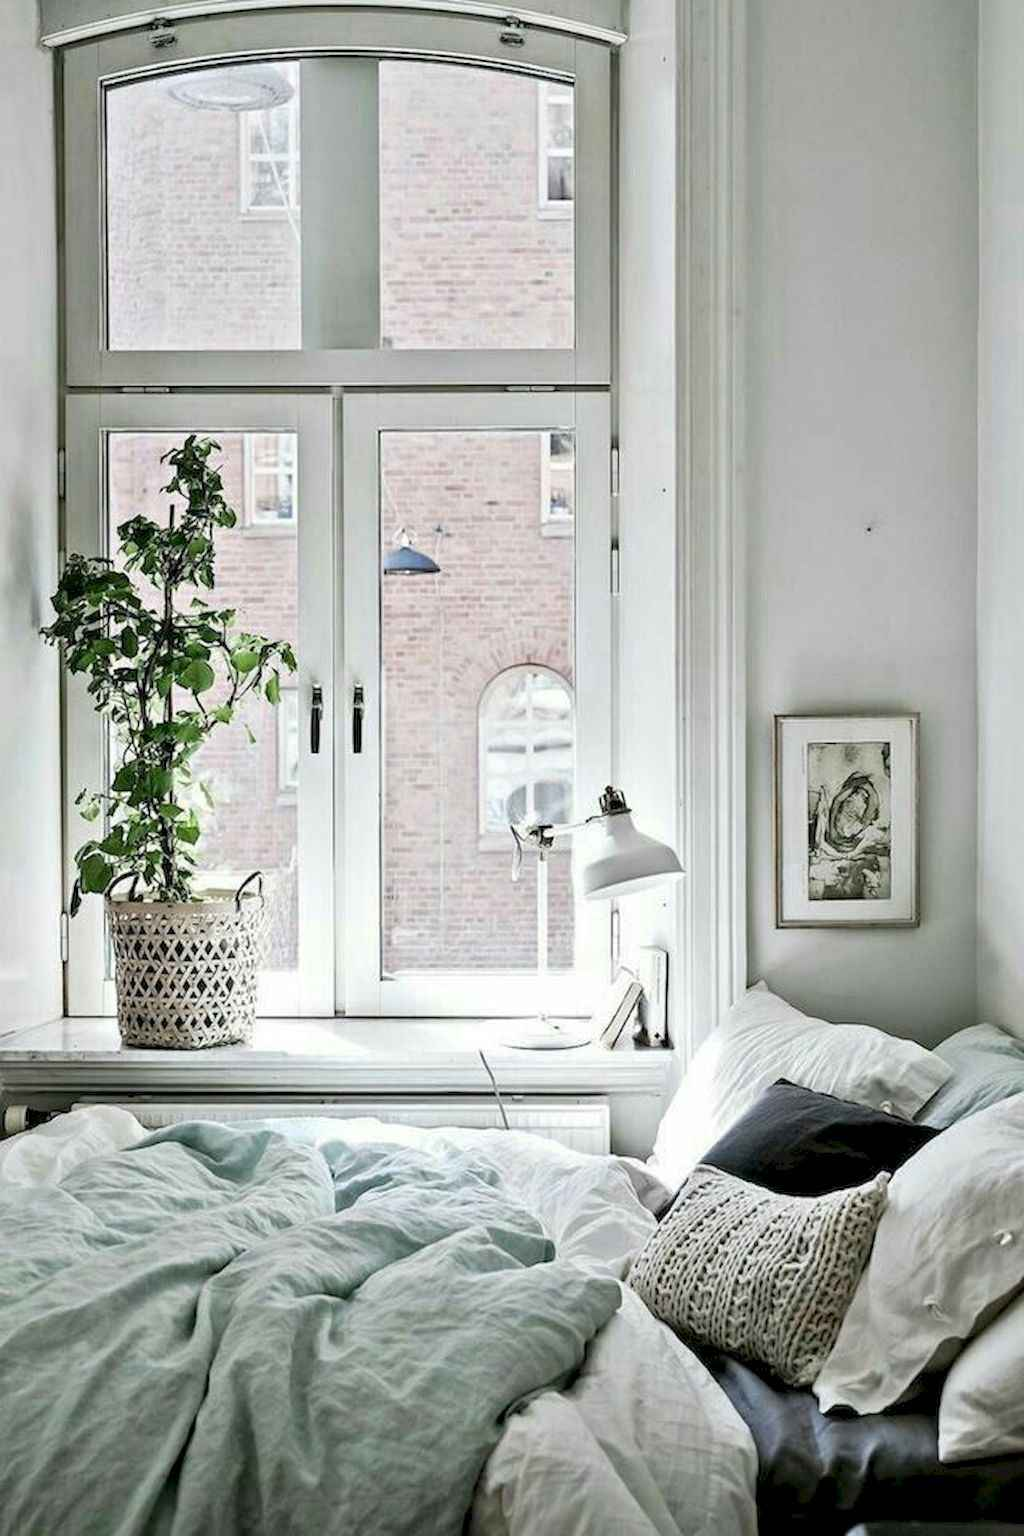 Cozy apartment decorating ideas on a budget (22)